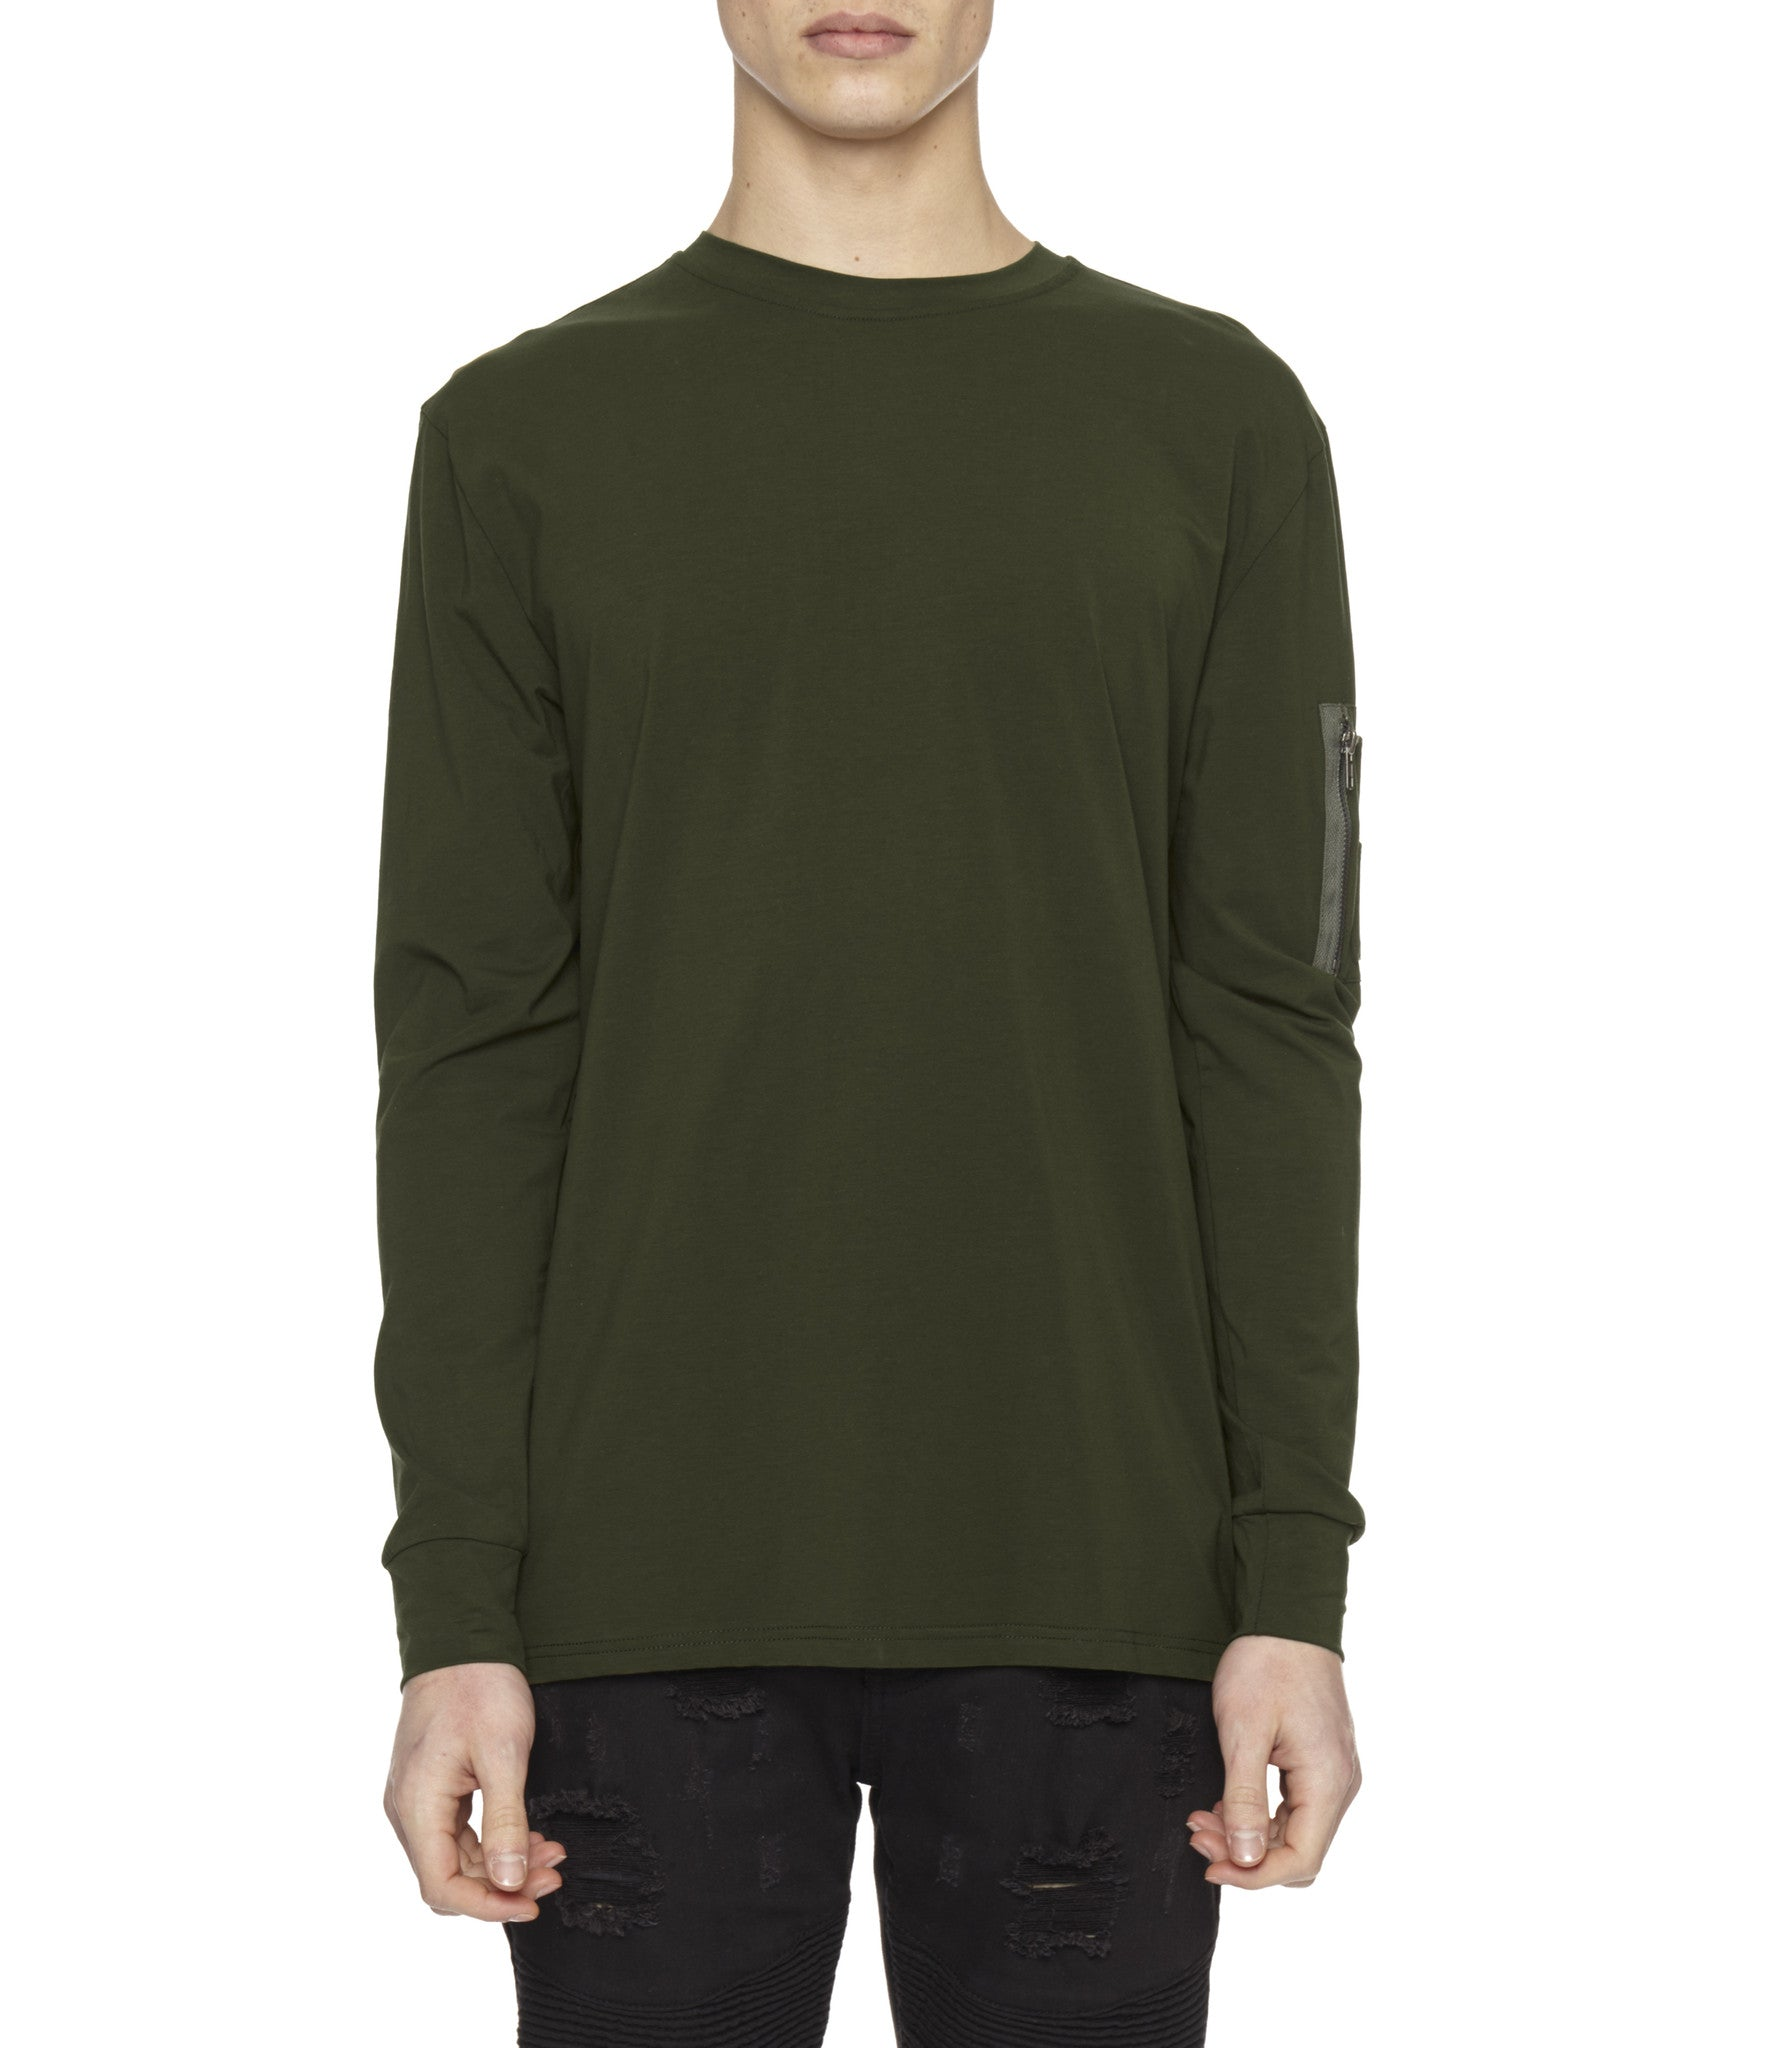 LS303 Utility Long-Sleeve Tee - Olive Green - underated london - underatedco - 4